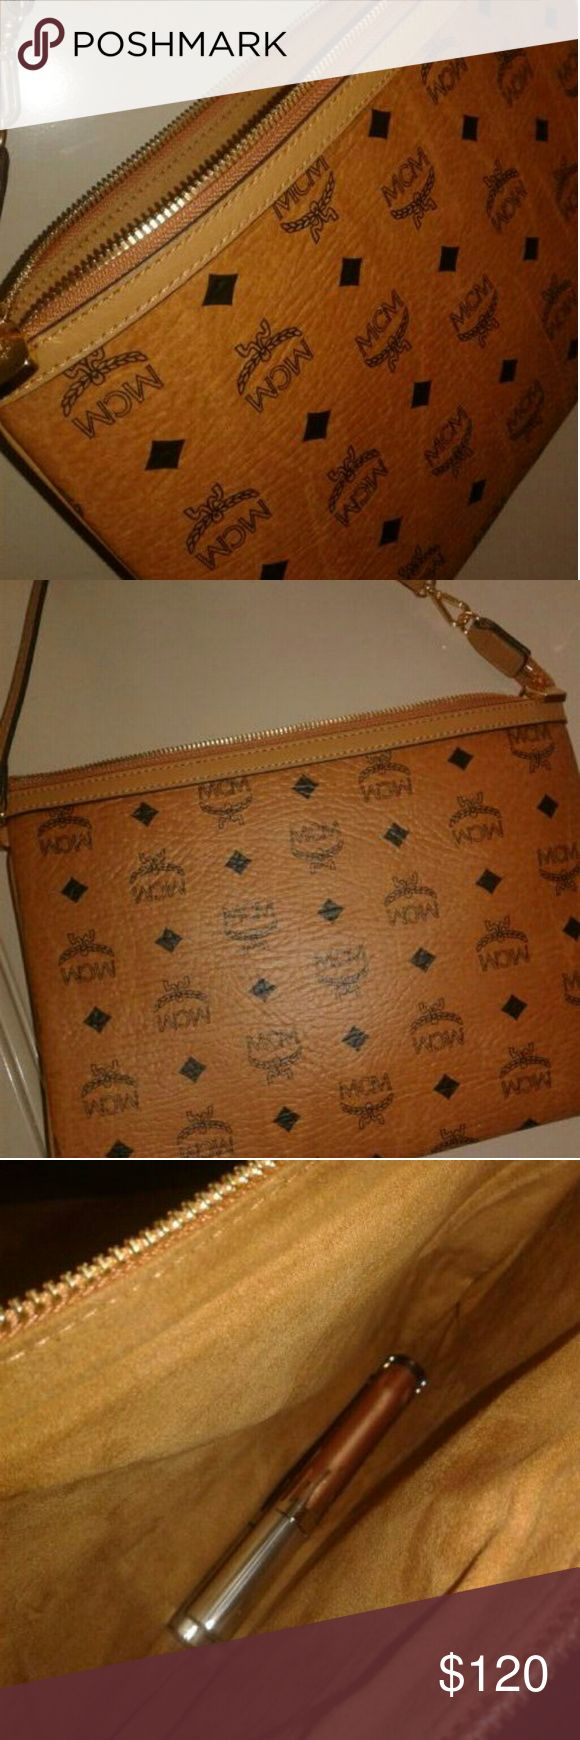 MCM CLUTCH Never used #authentic MCM Accessories